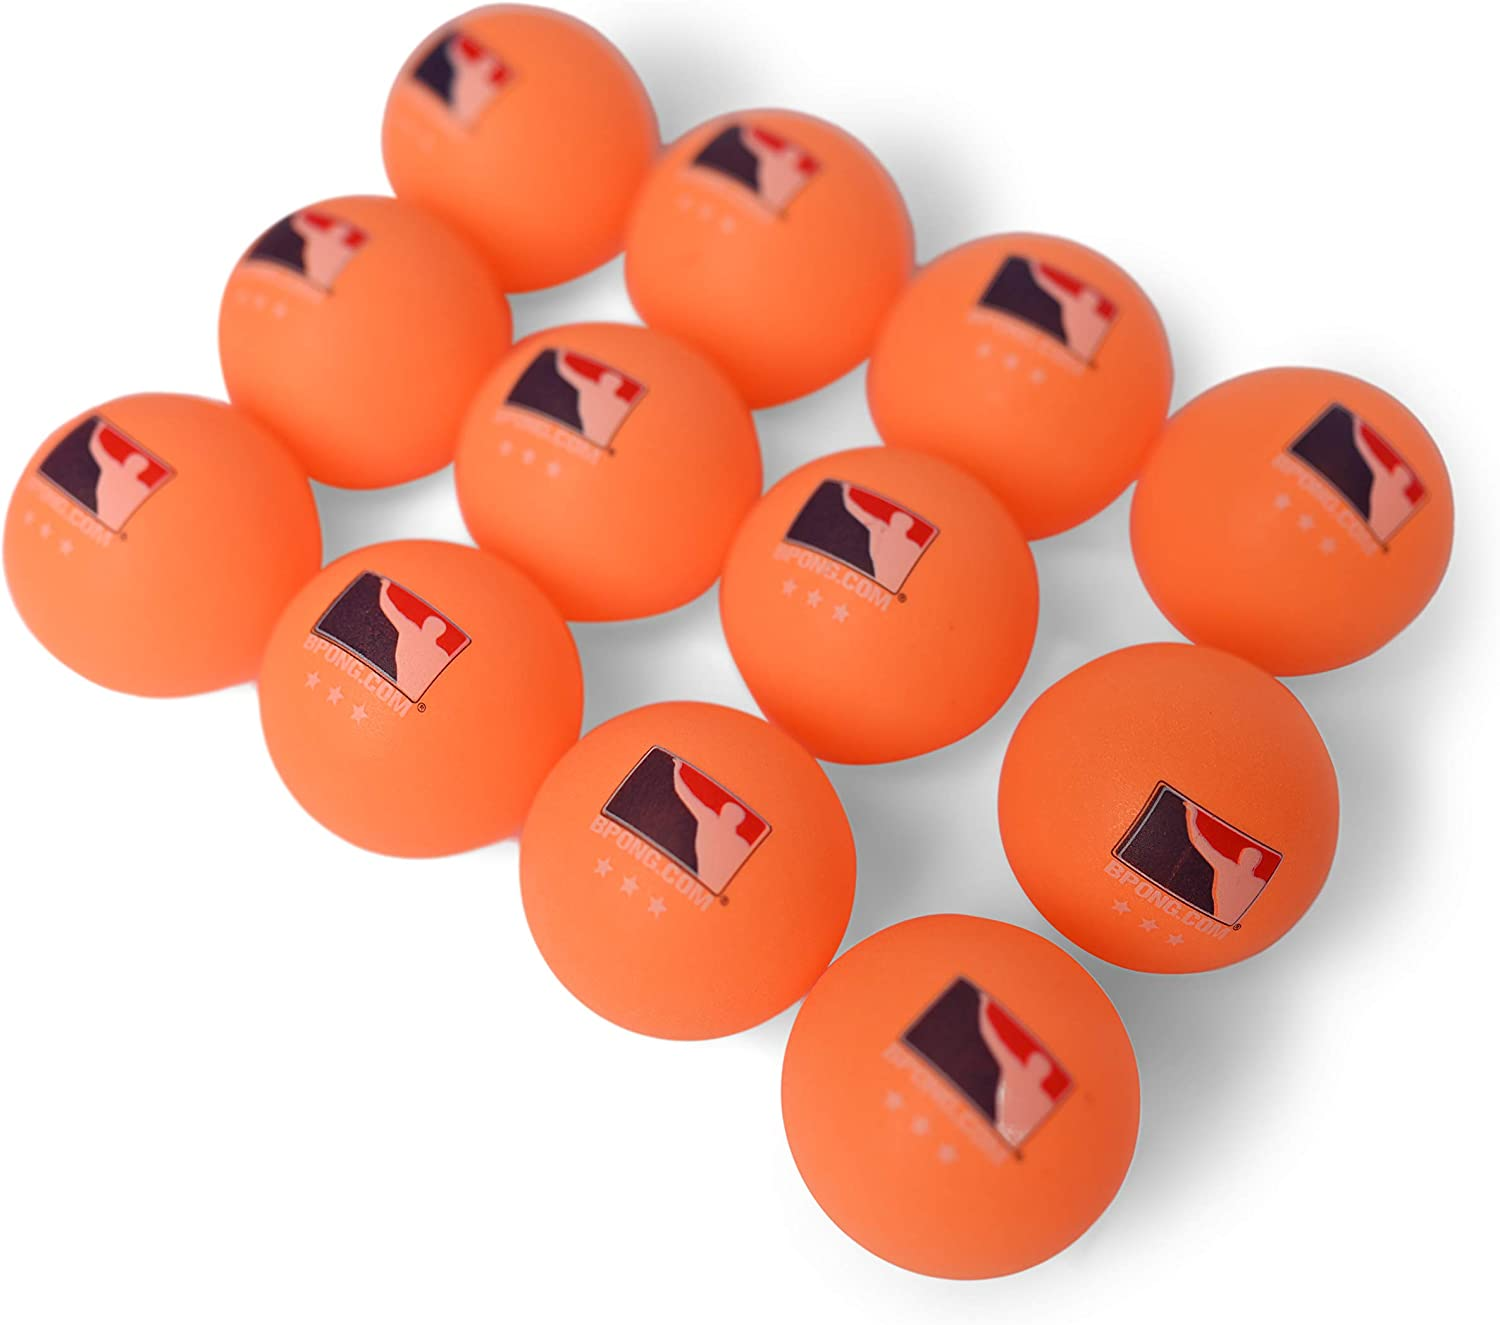 OFFer Orange Beer Pong Balls by Tulsa Mall WSO of BPONG Series World